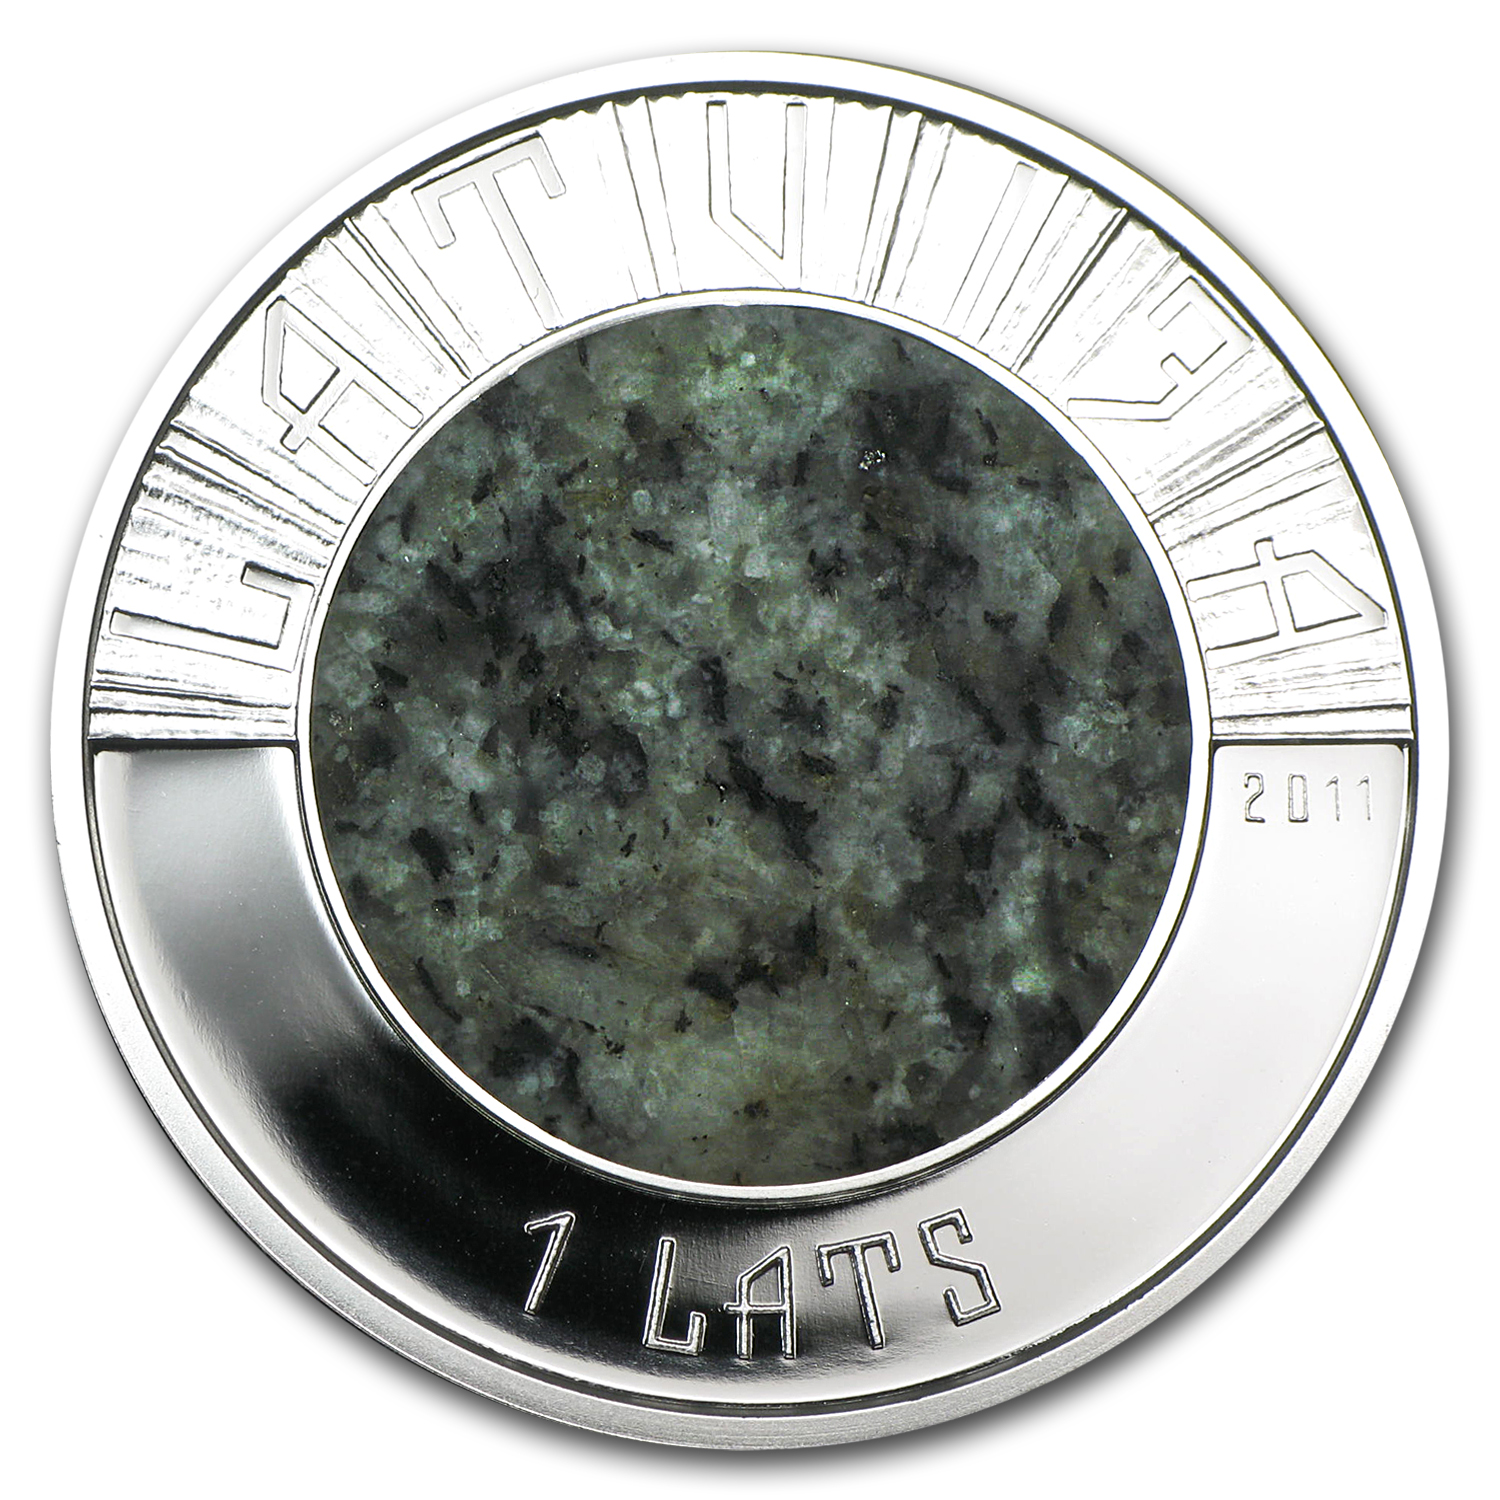 2011 Latvia Silver & Granite 1 Lats Proof